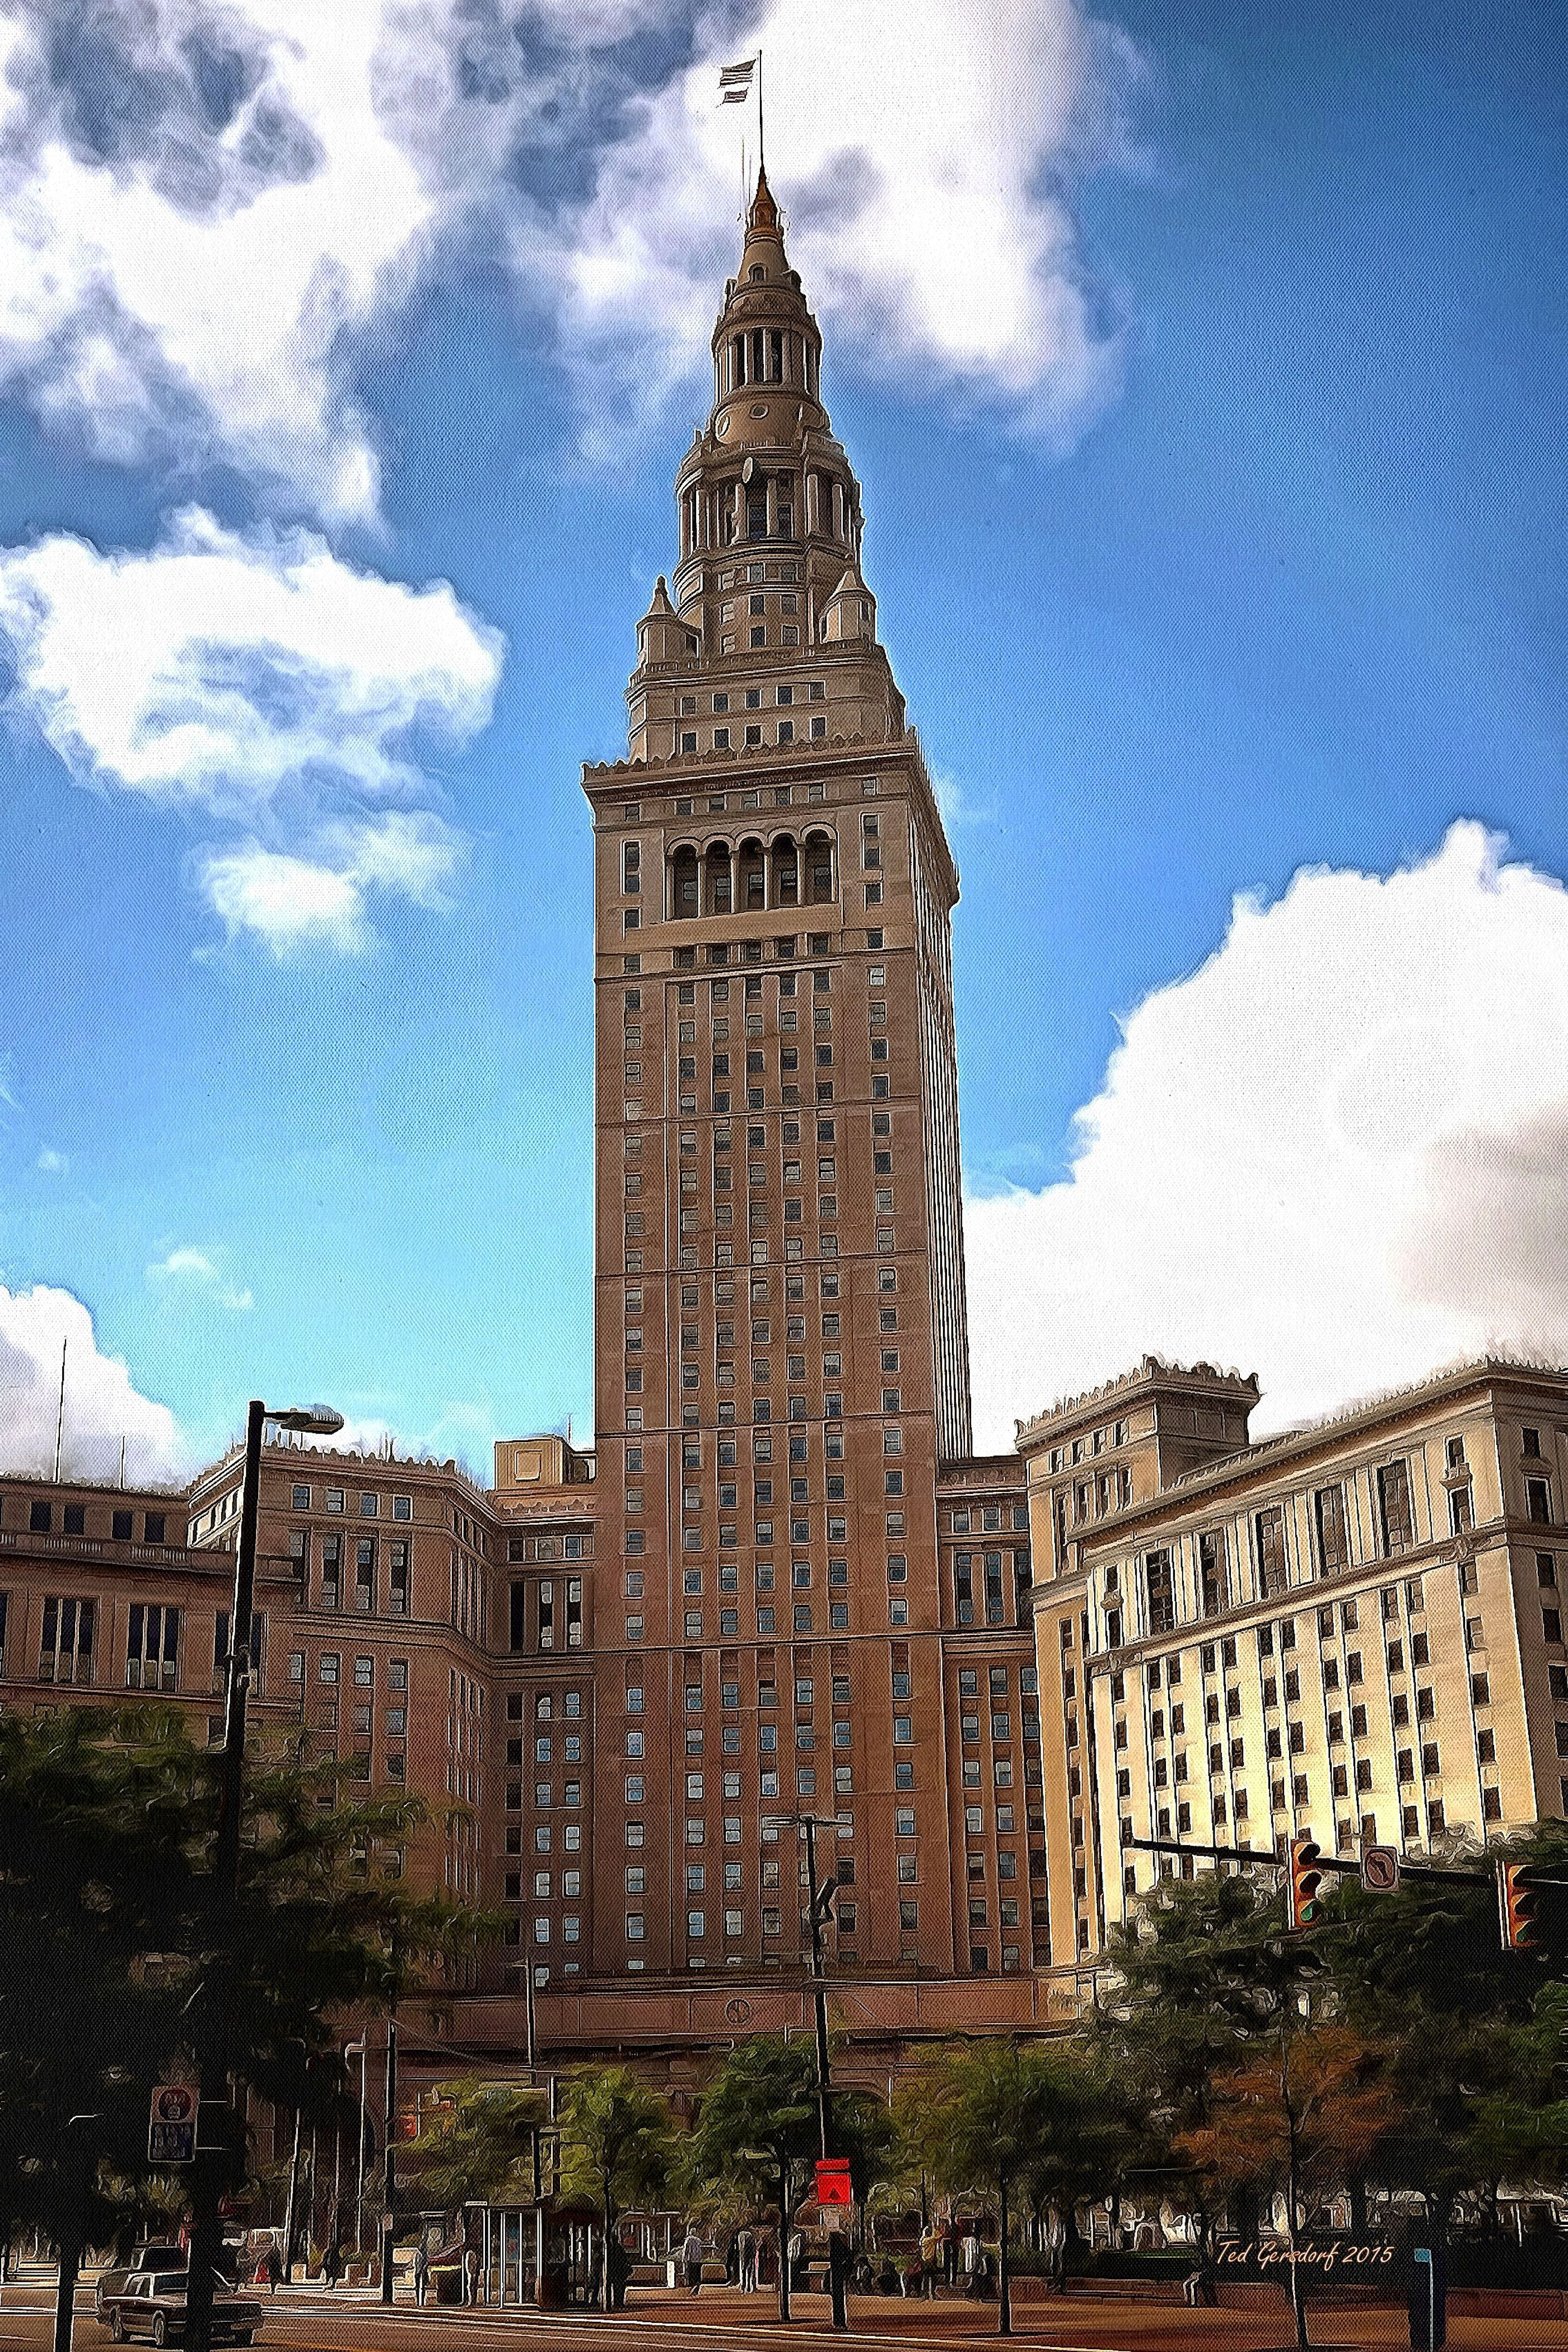 Painted version of the wonderful Terminal Tower